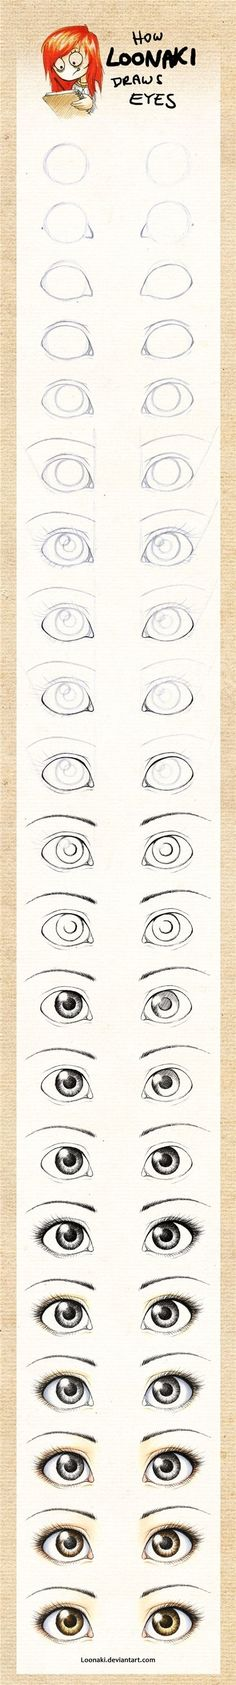 Learn to Draw Eyes by mystra #How-To #tutorial